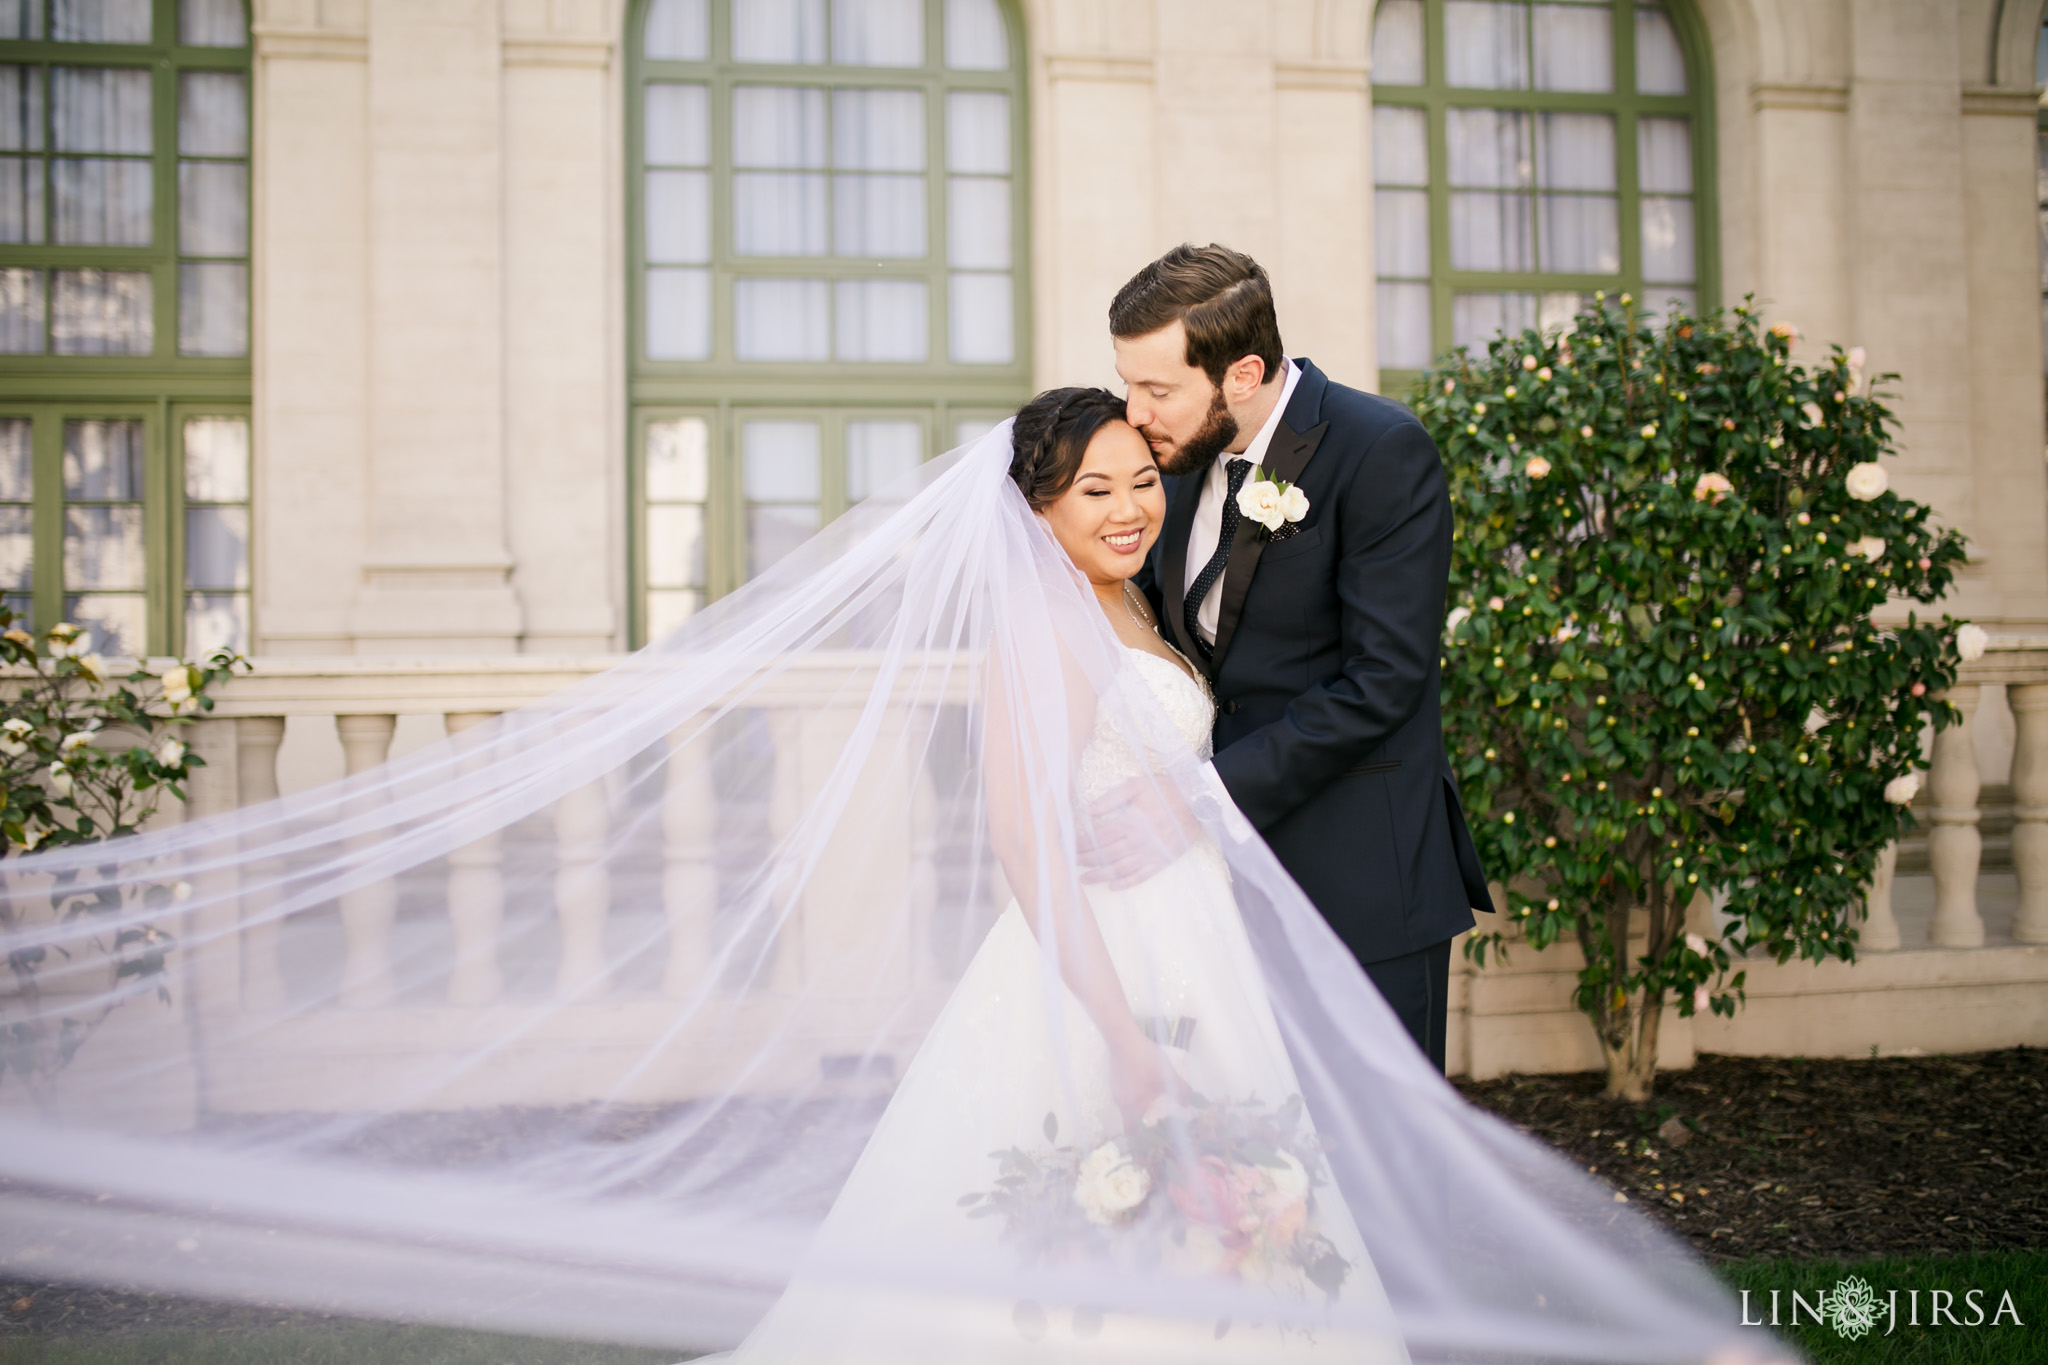 70 The Ebell Los Angeles Wedding Photography